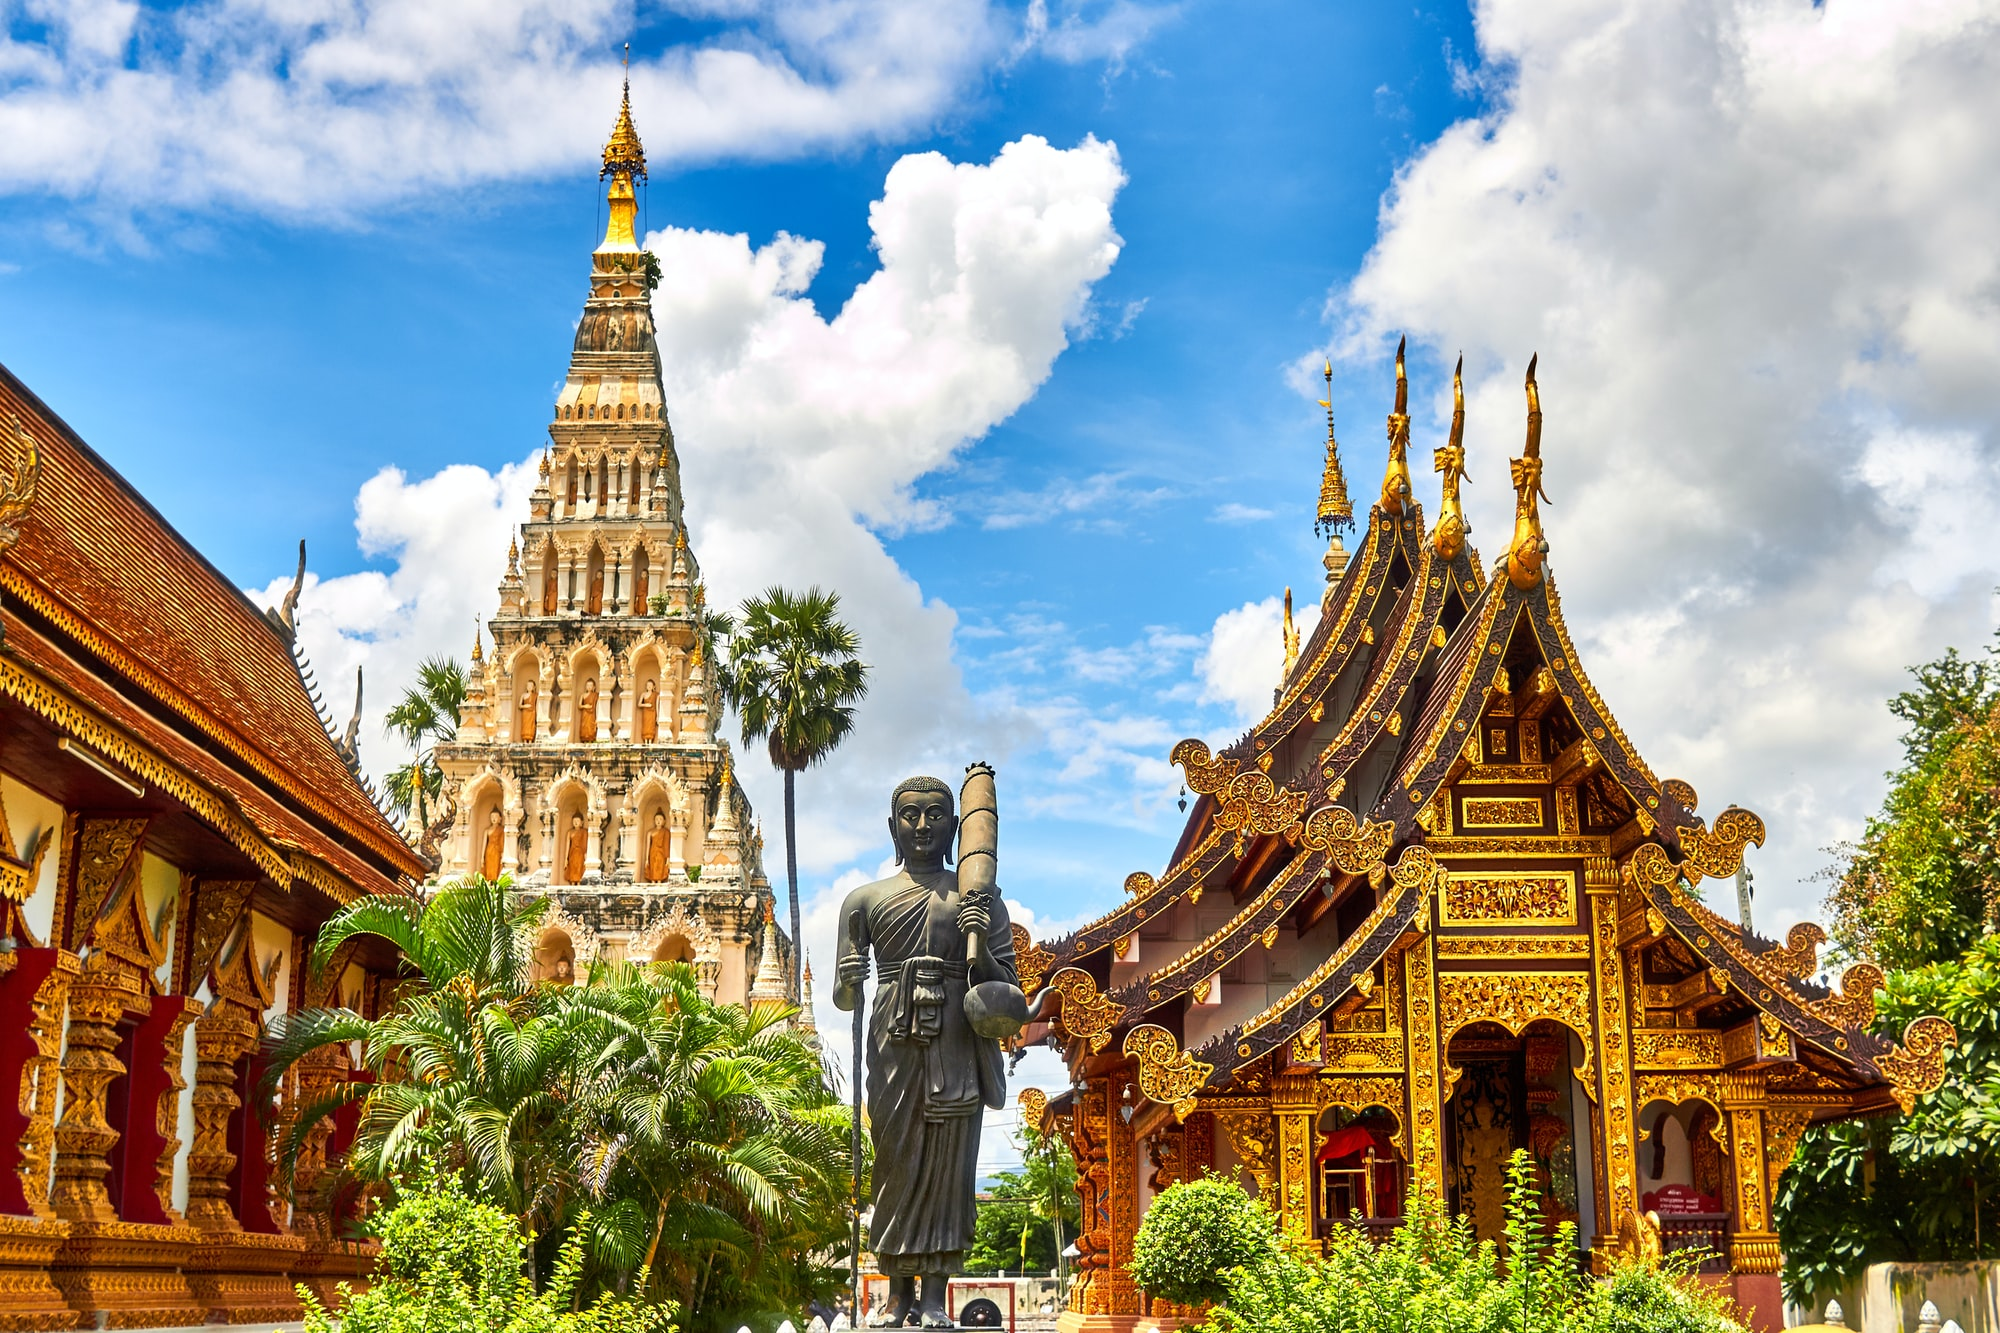 Traveling on motorbike in norther thailand we came across these amazing sculptural temples and buildings.